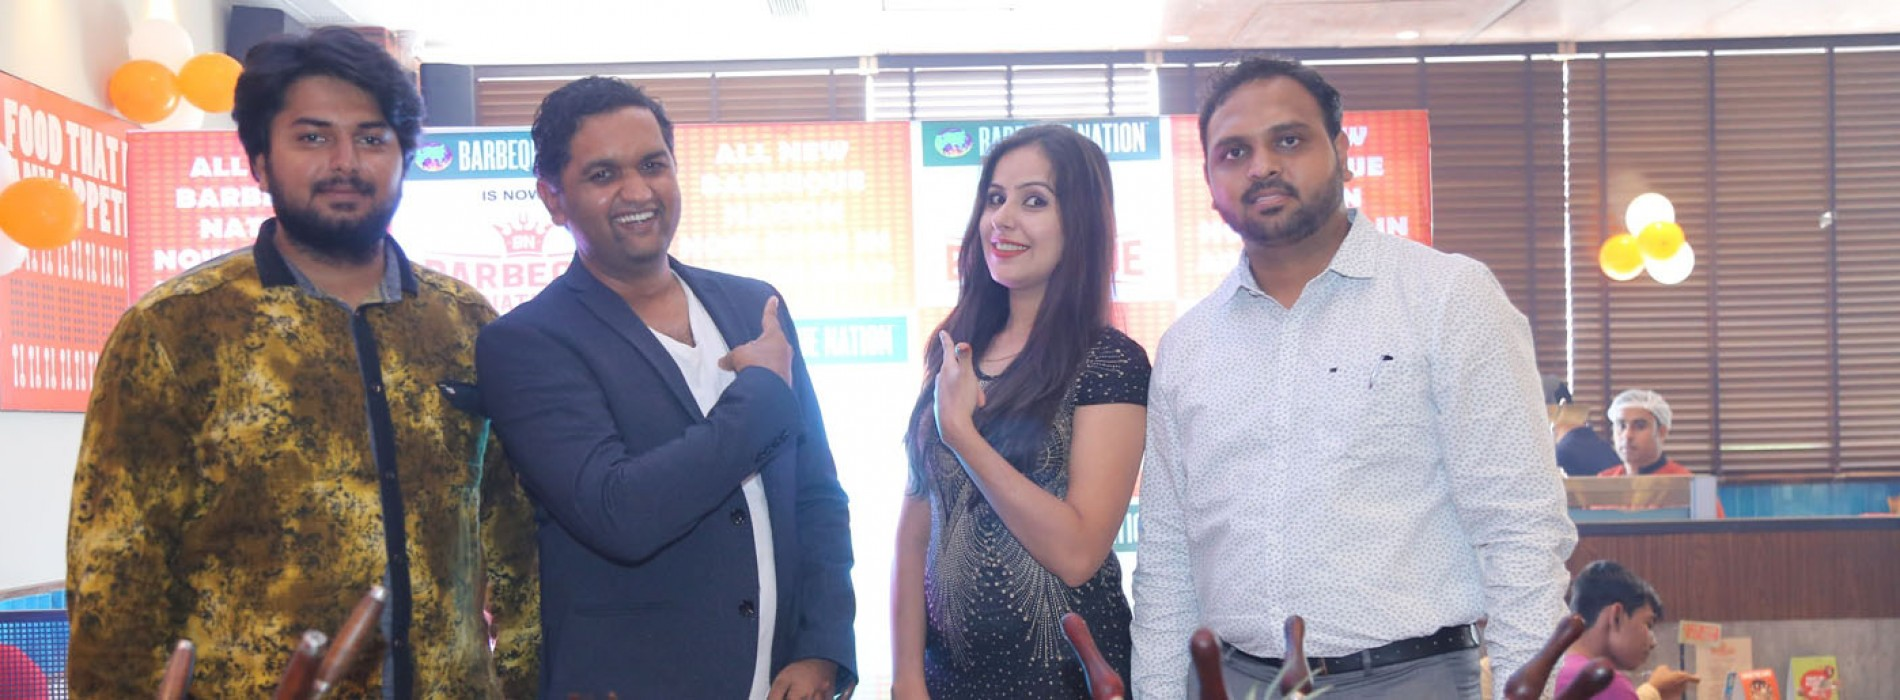 Barbeque Nation restaurant launches in Aurangabad